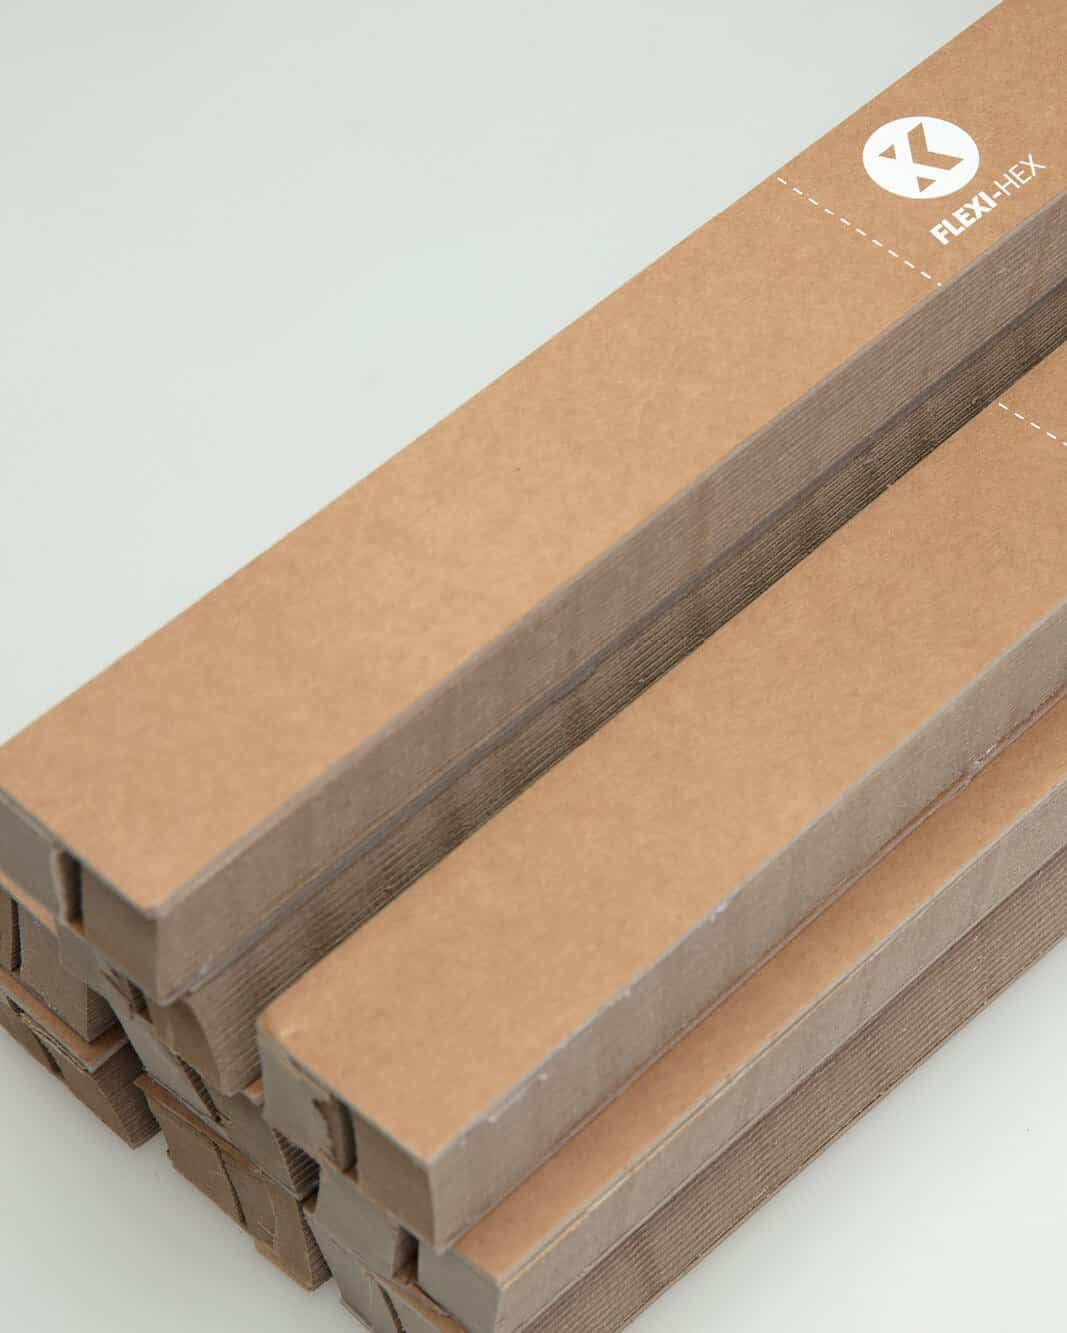 Cardboard surfboard packaging sleeve